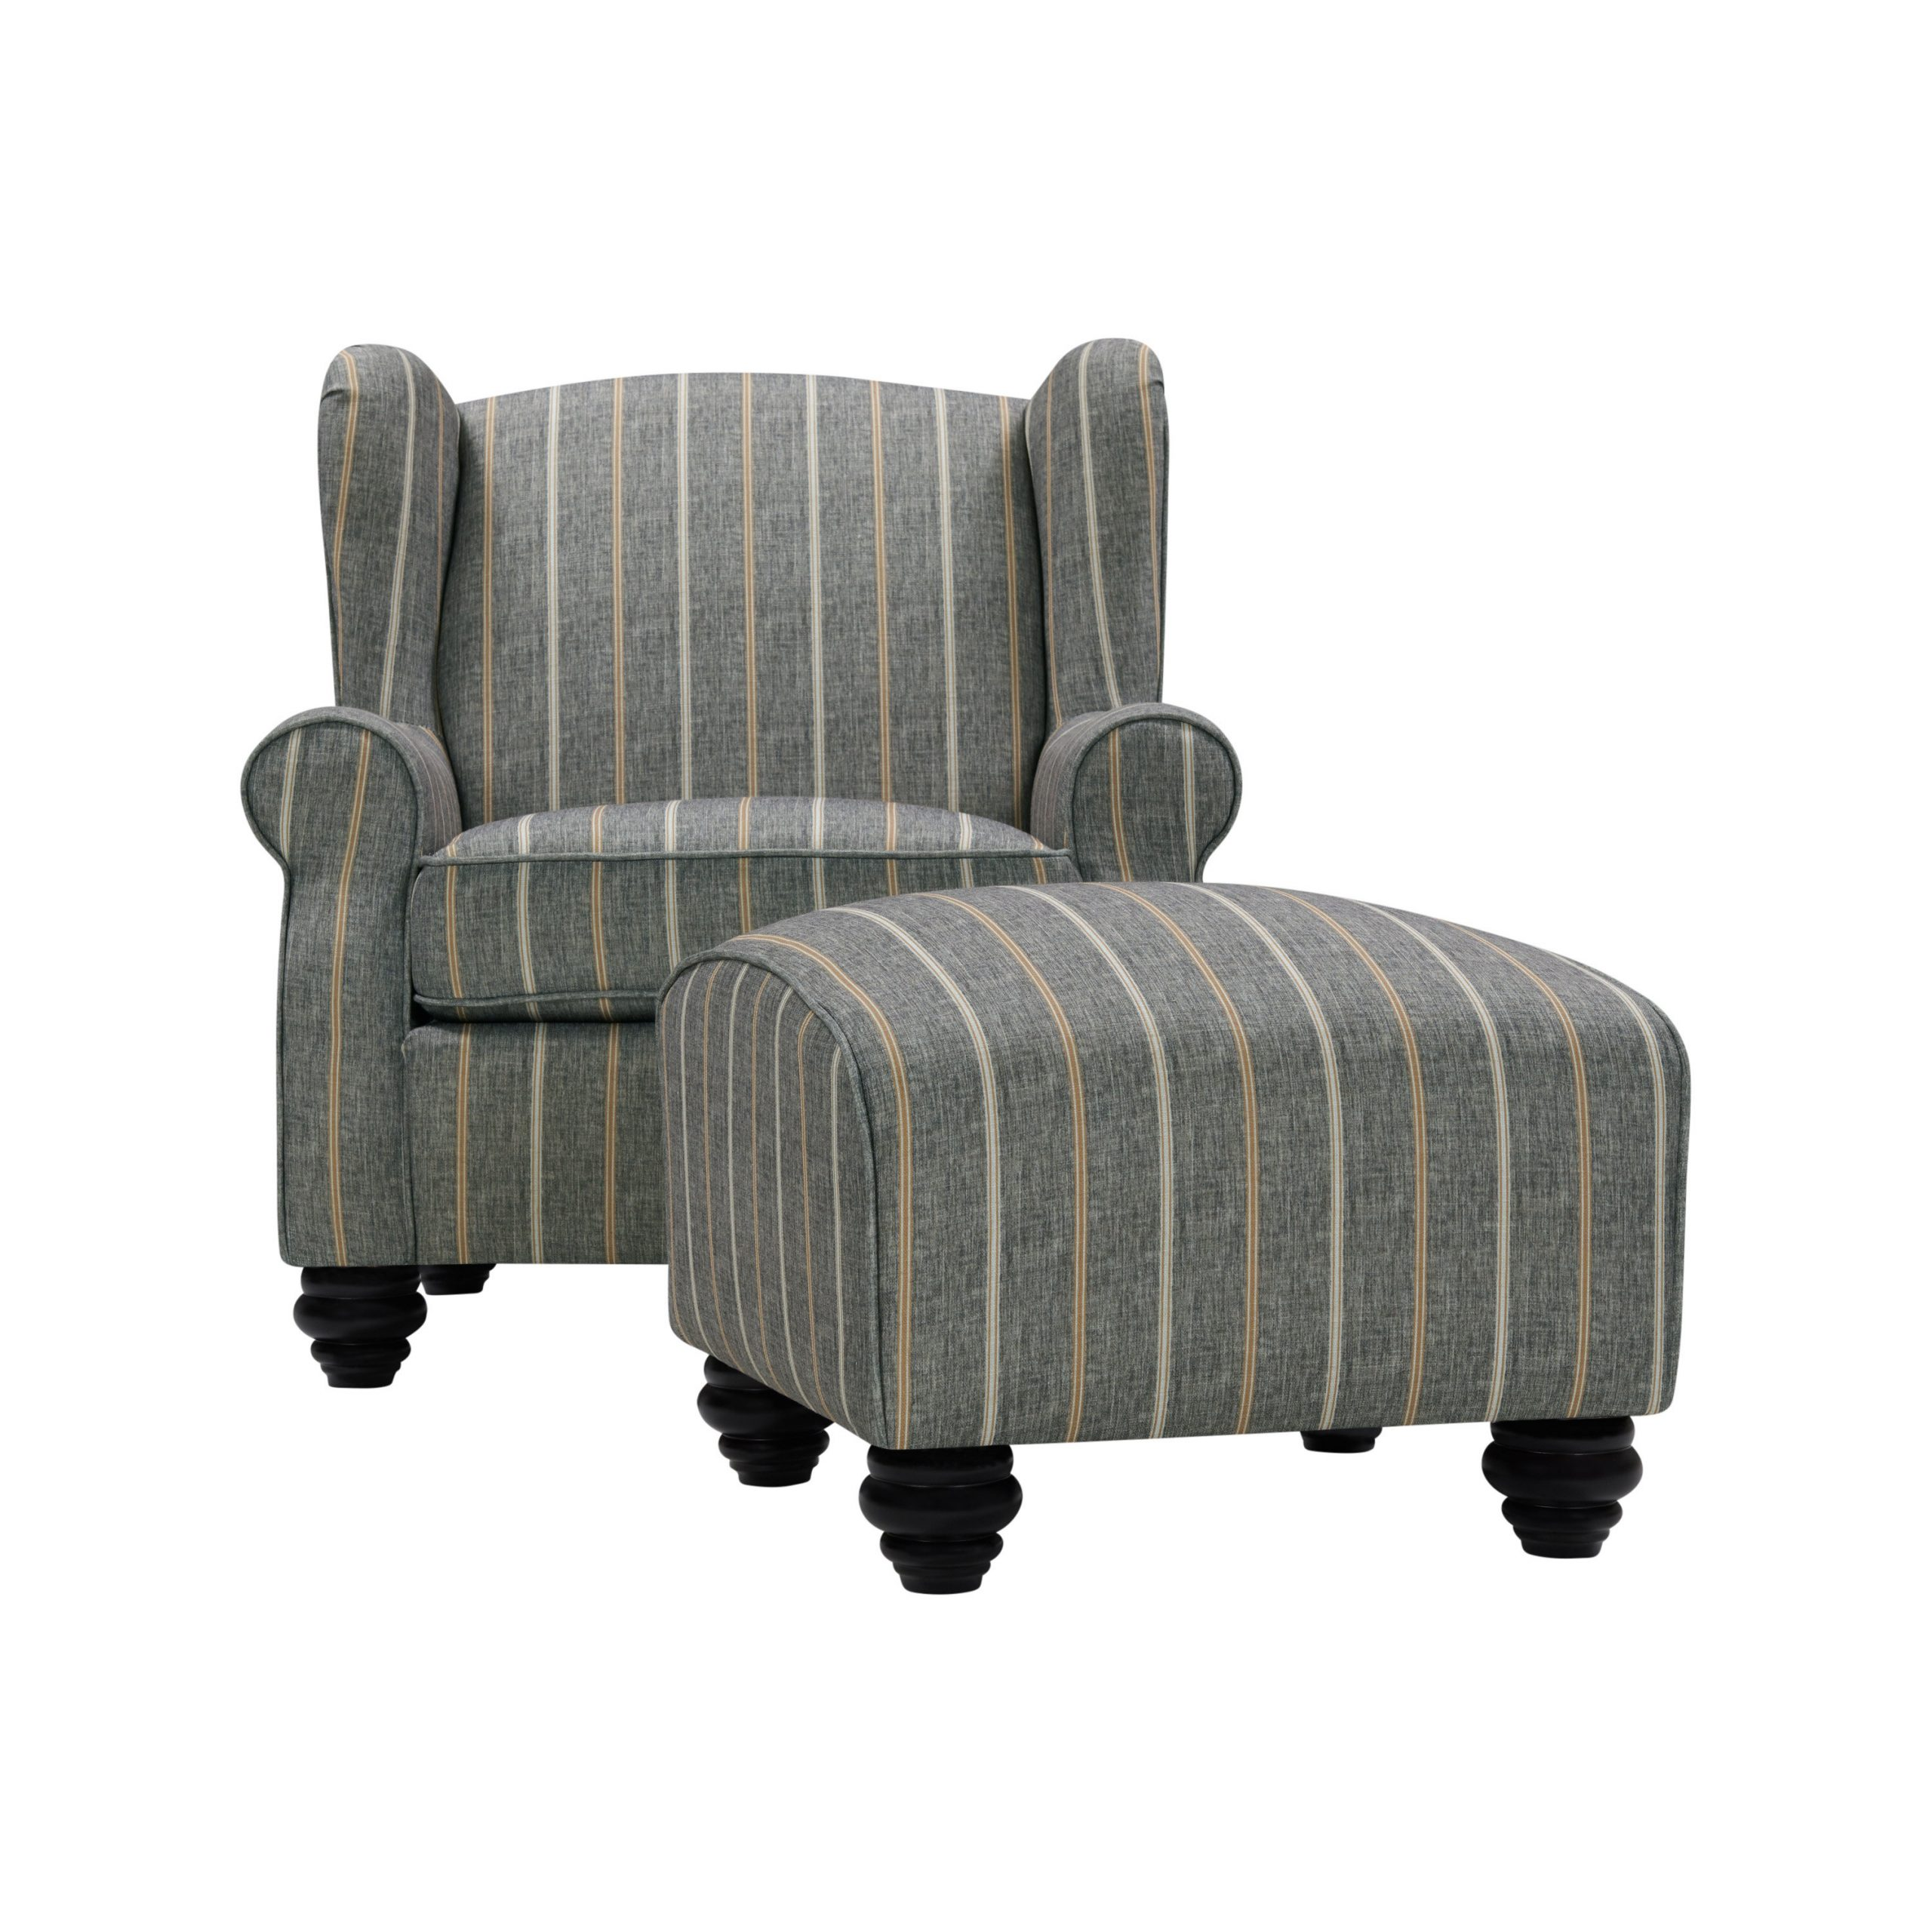 Wayfair Intended For Brames Barrel Chair And Ottoman Sets (View 6 of 20)